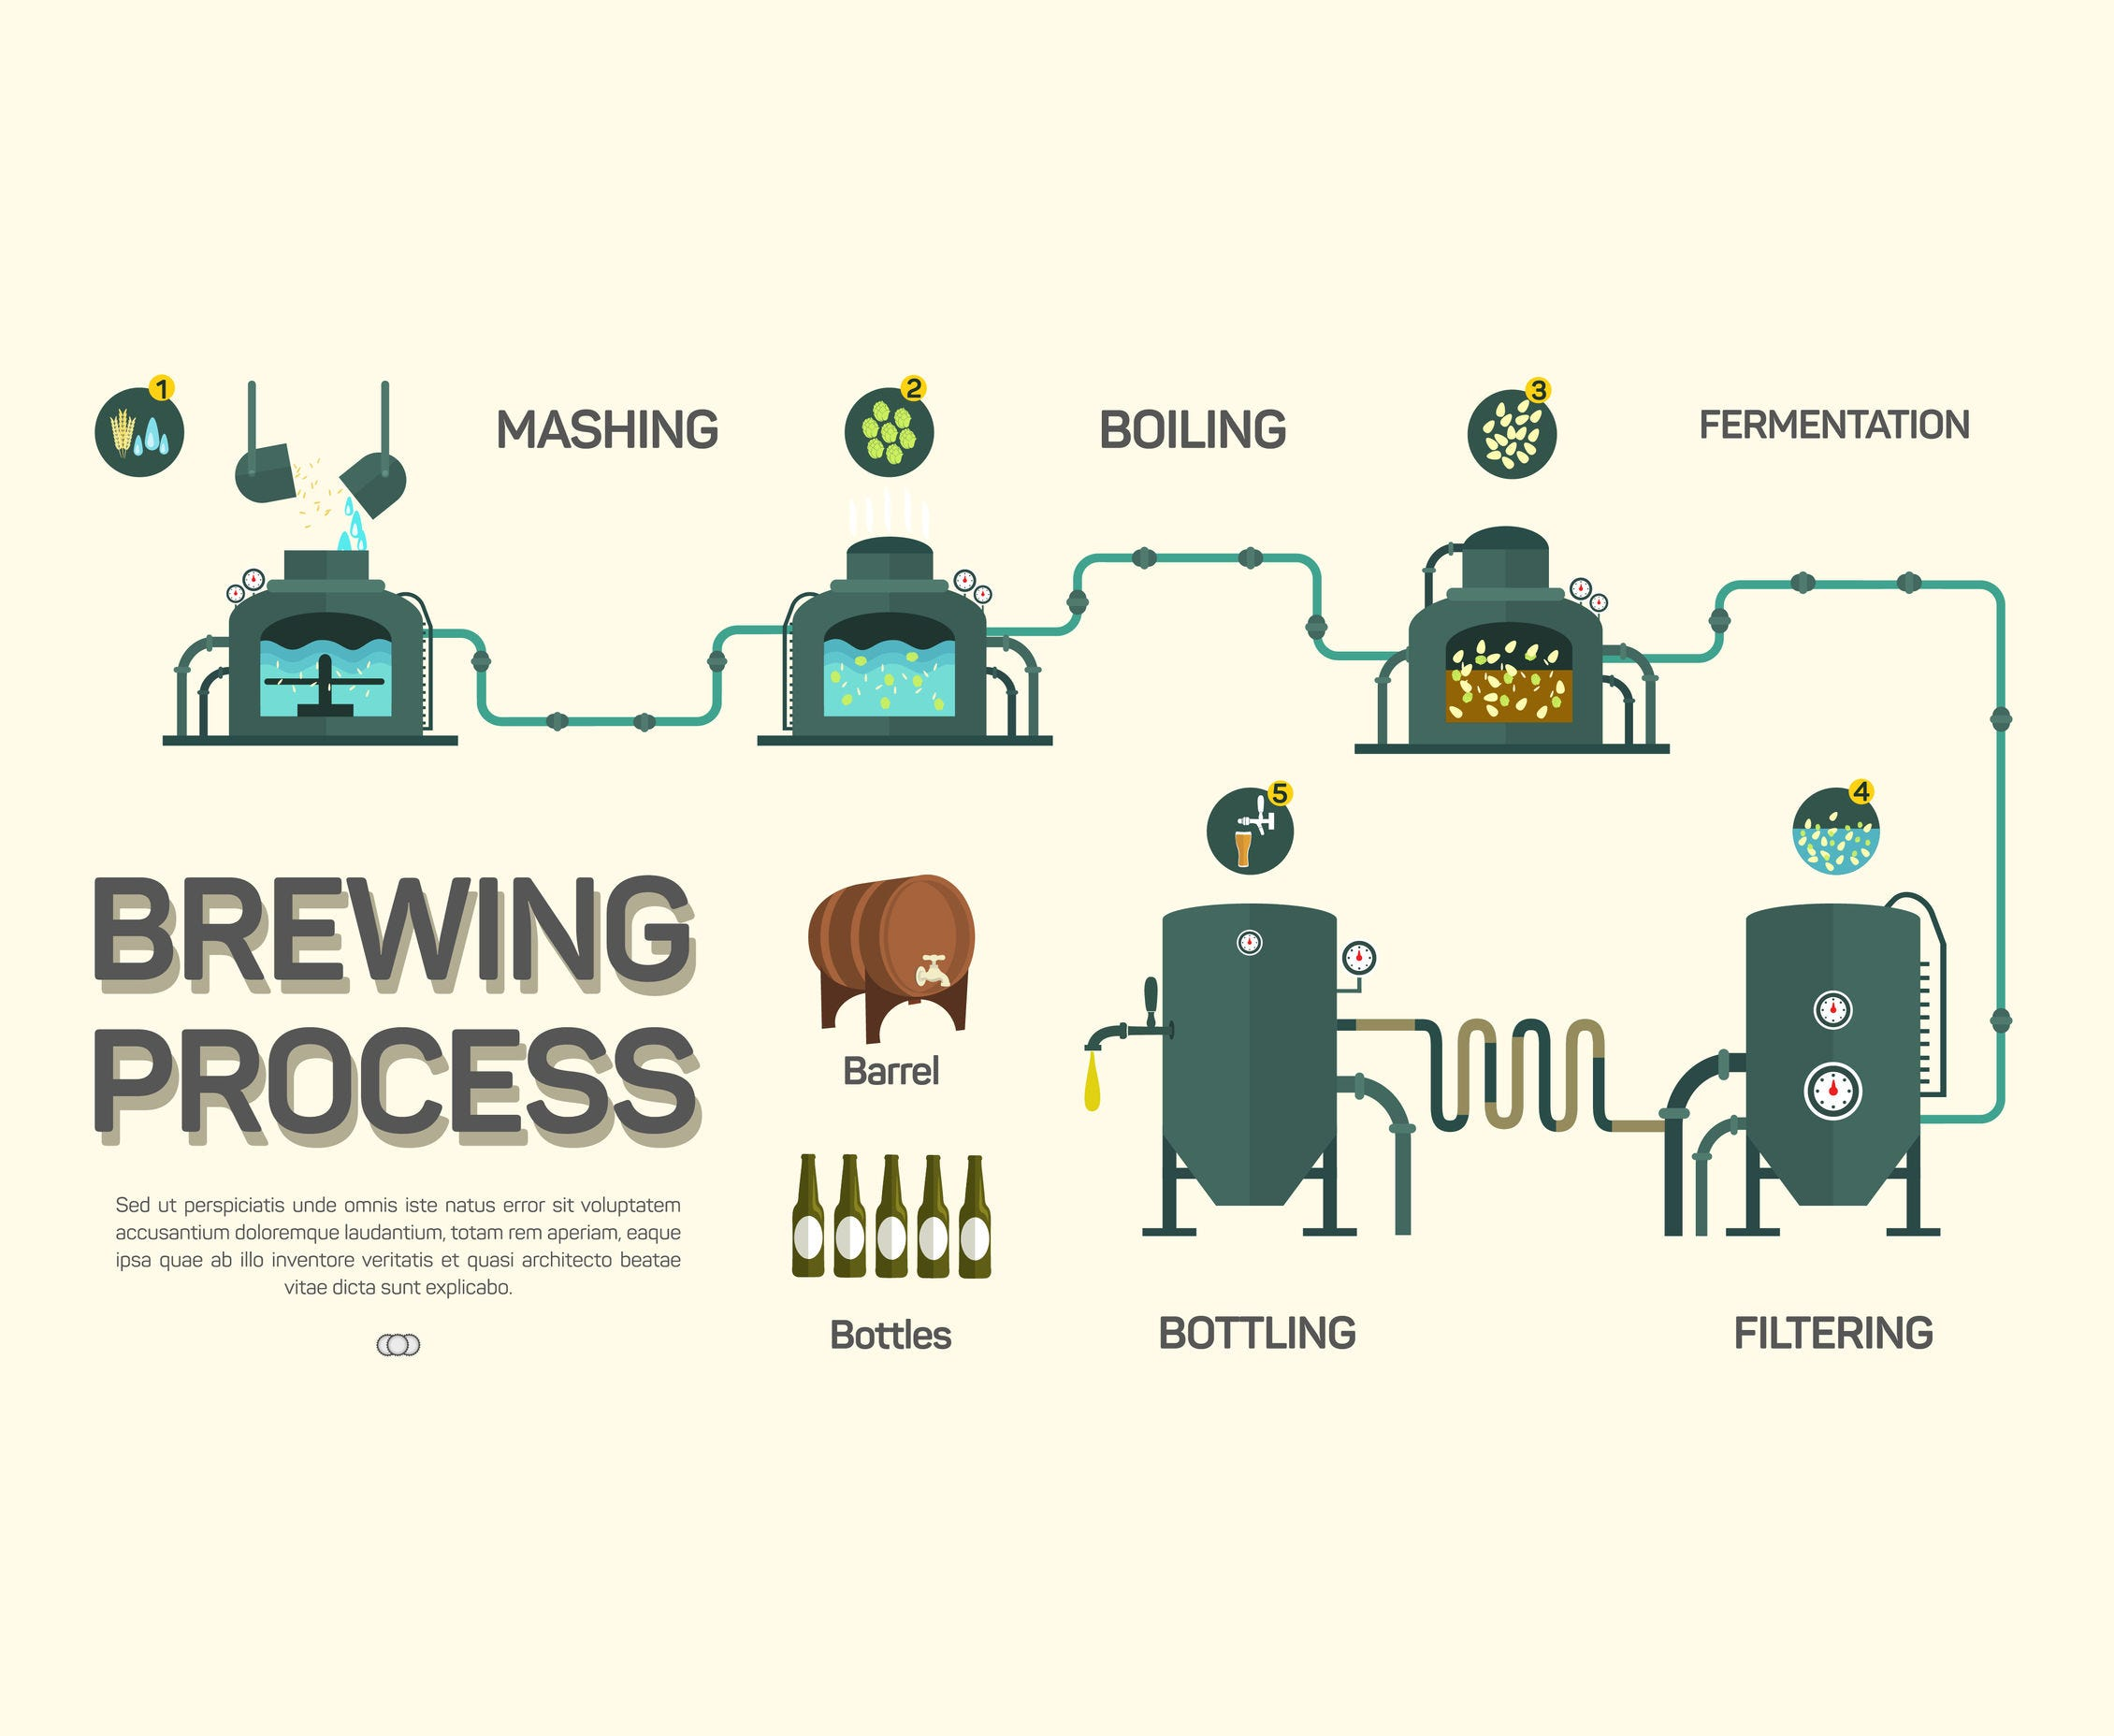 the beer brewing process